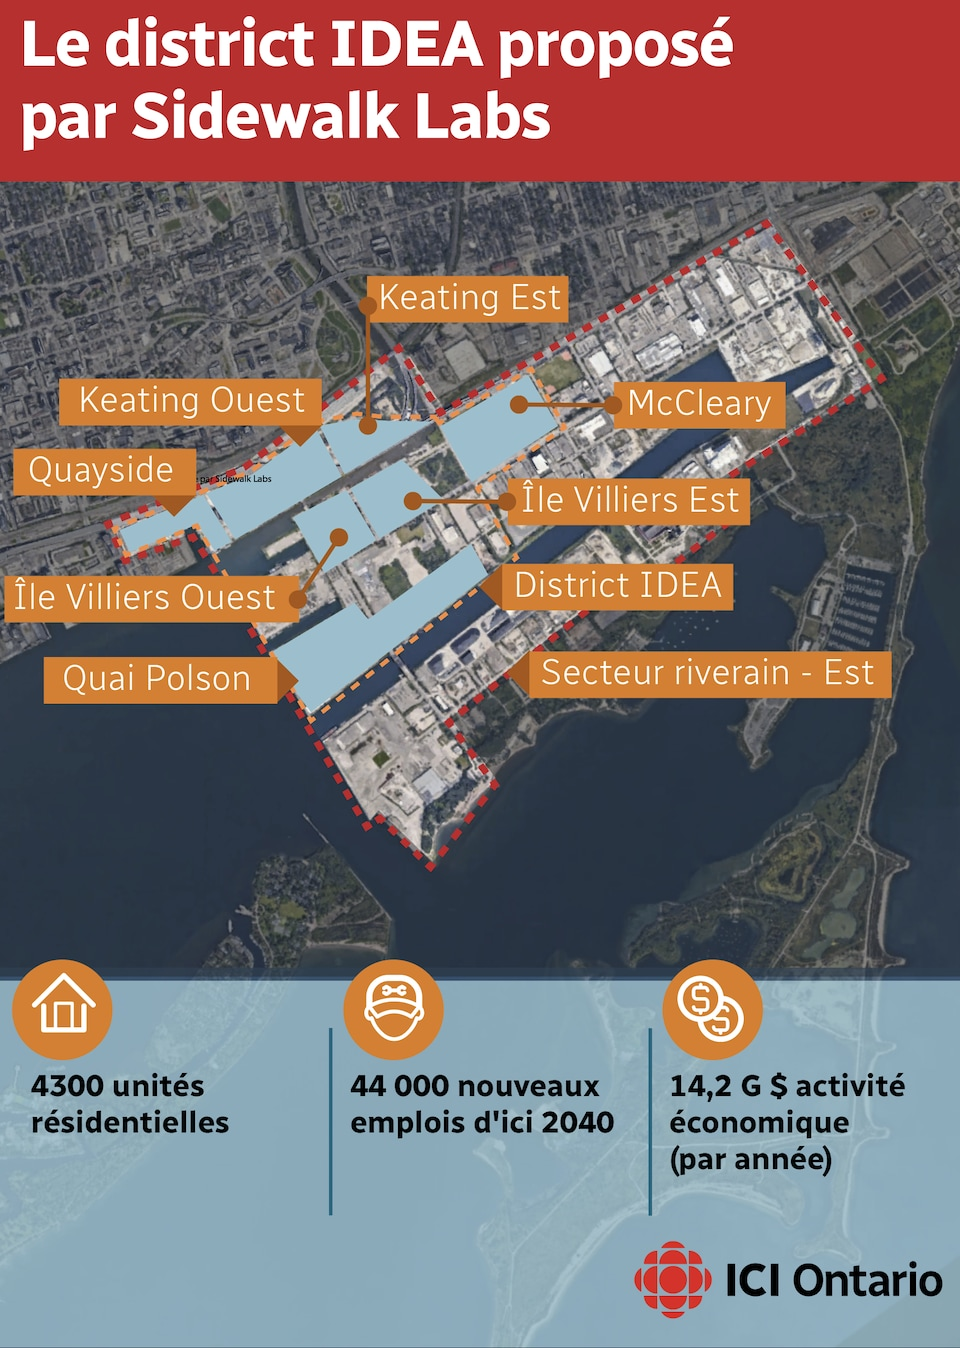 Le plan du district IDEA, proposé pas Sidewalk Labs vise à revitaliser une partie du secteur riverain de Toronto.